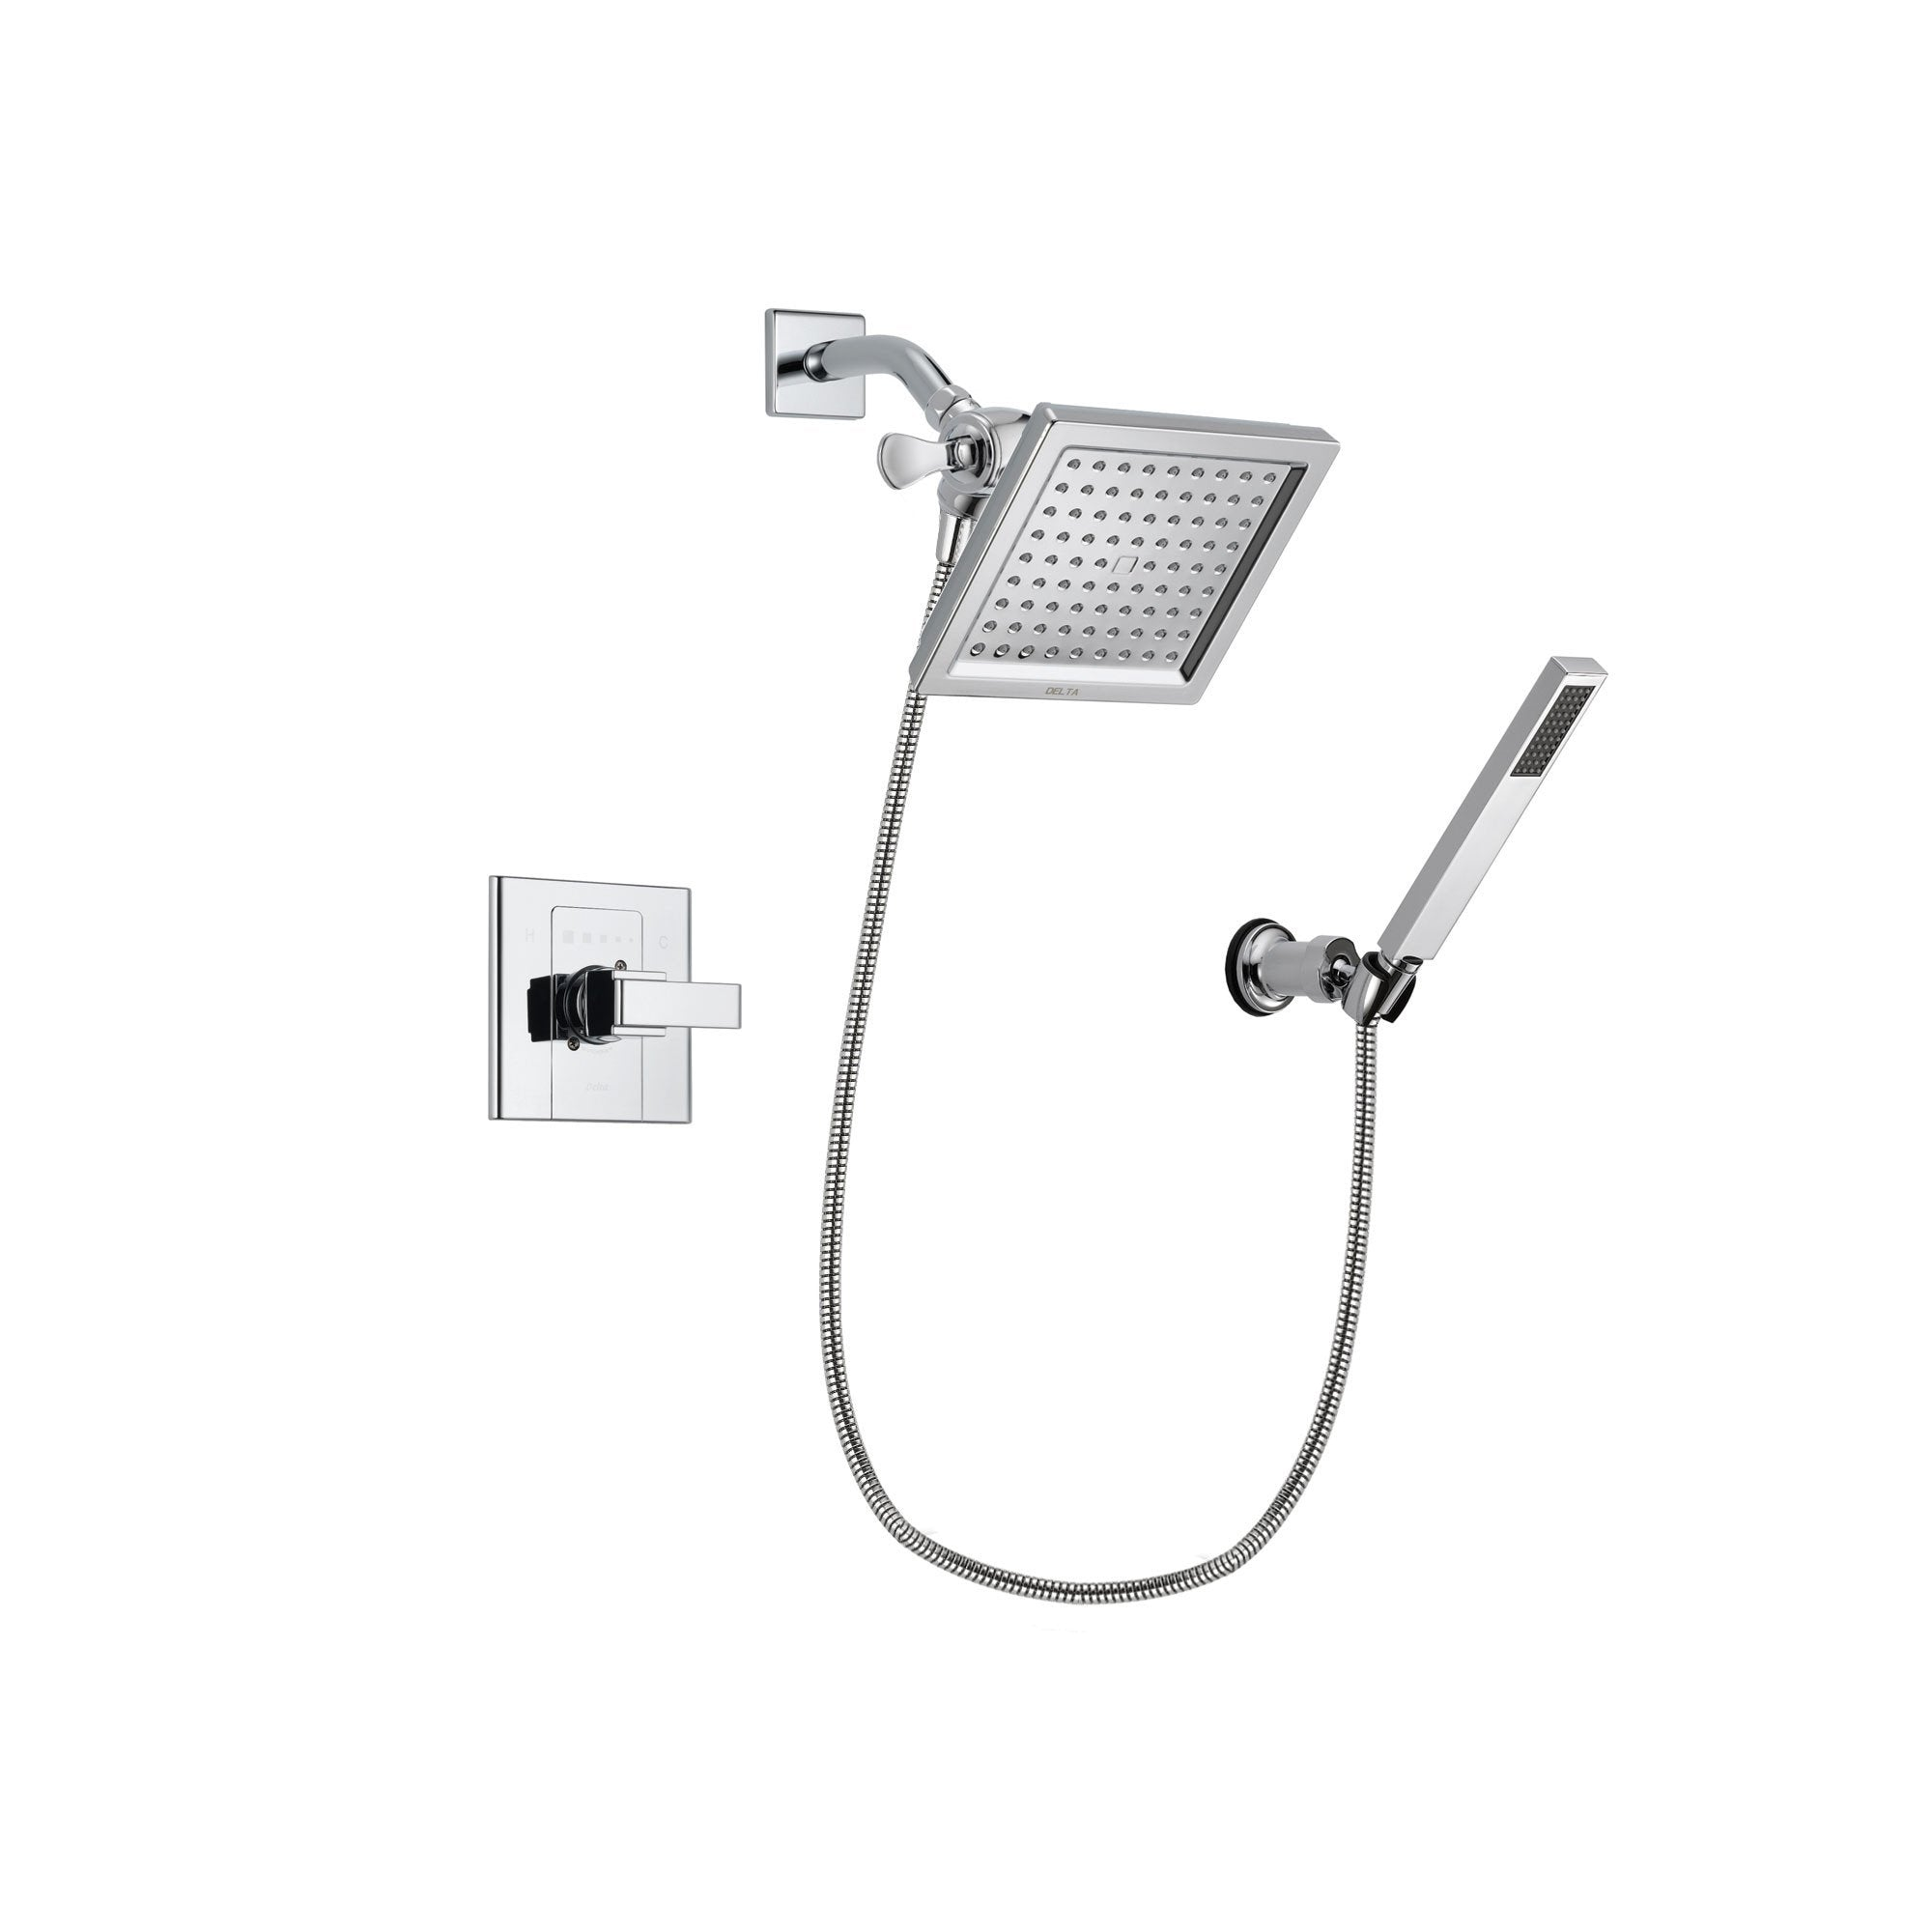 Delta Arzo Chrome Finish Shower Faucet System Package with 6.5-inch Square Rain Showerhead and Modern Handheld Shower Spray with Wall Bracket and Hose Includes Rough-in Valve DSP0124V